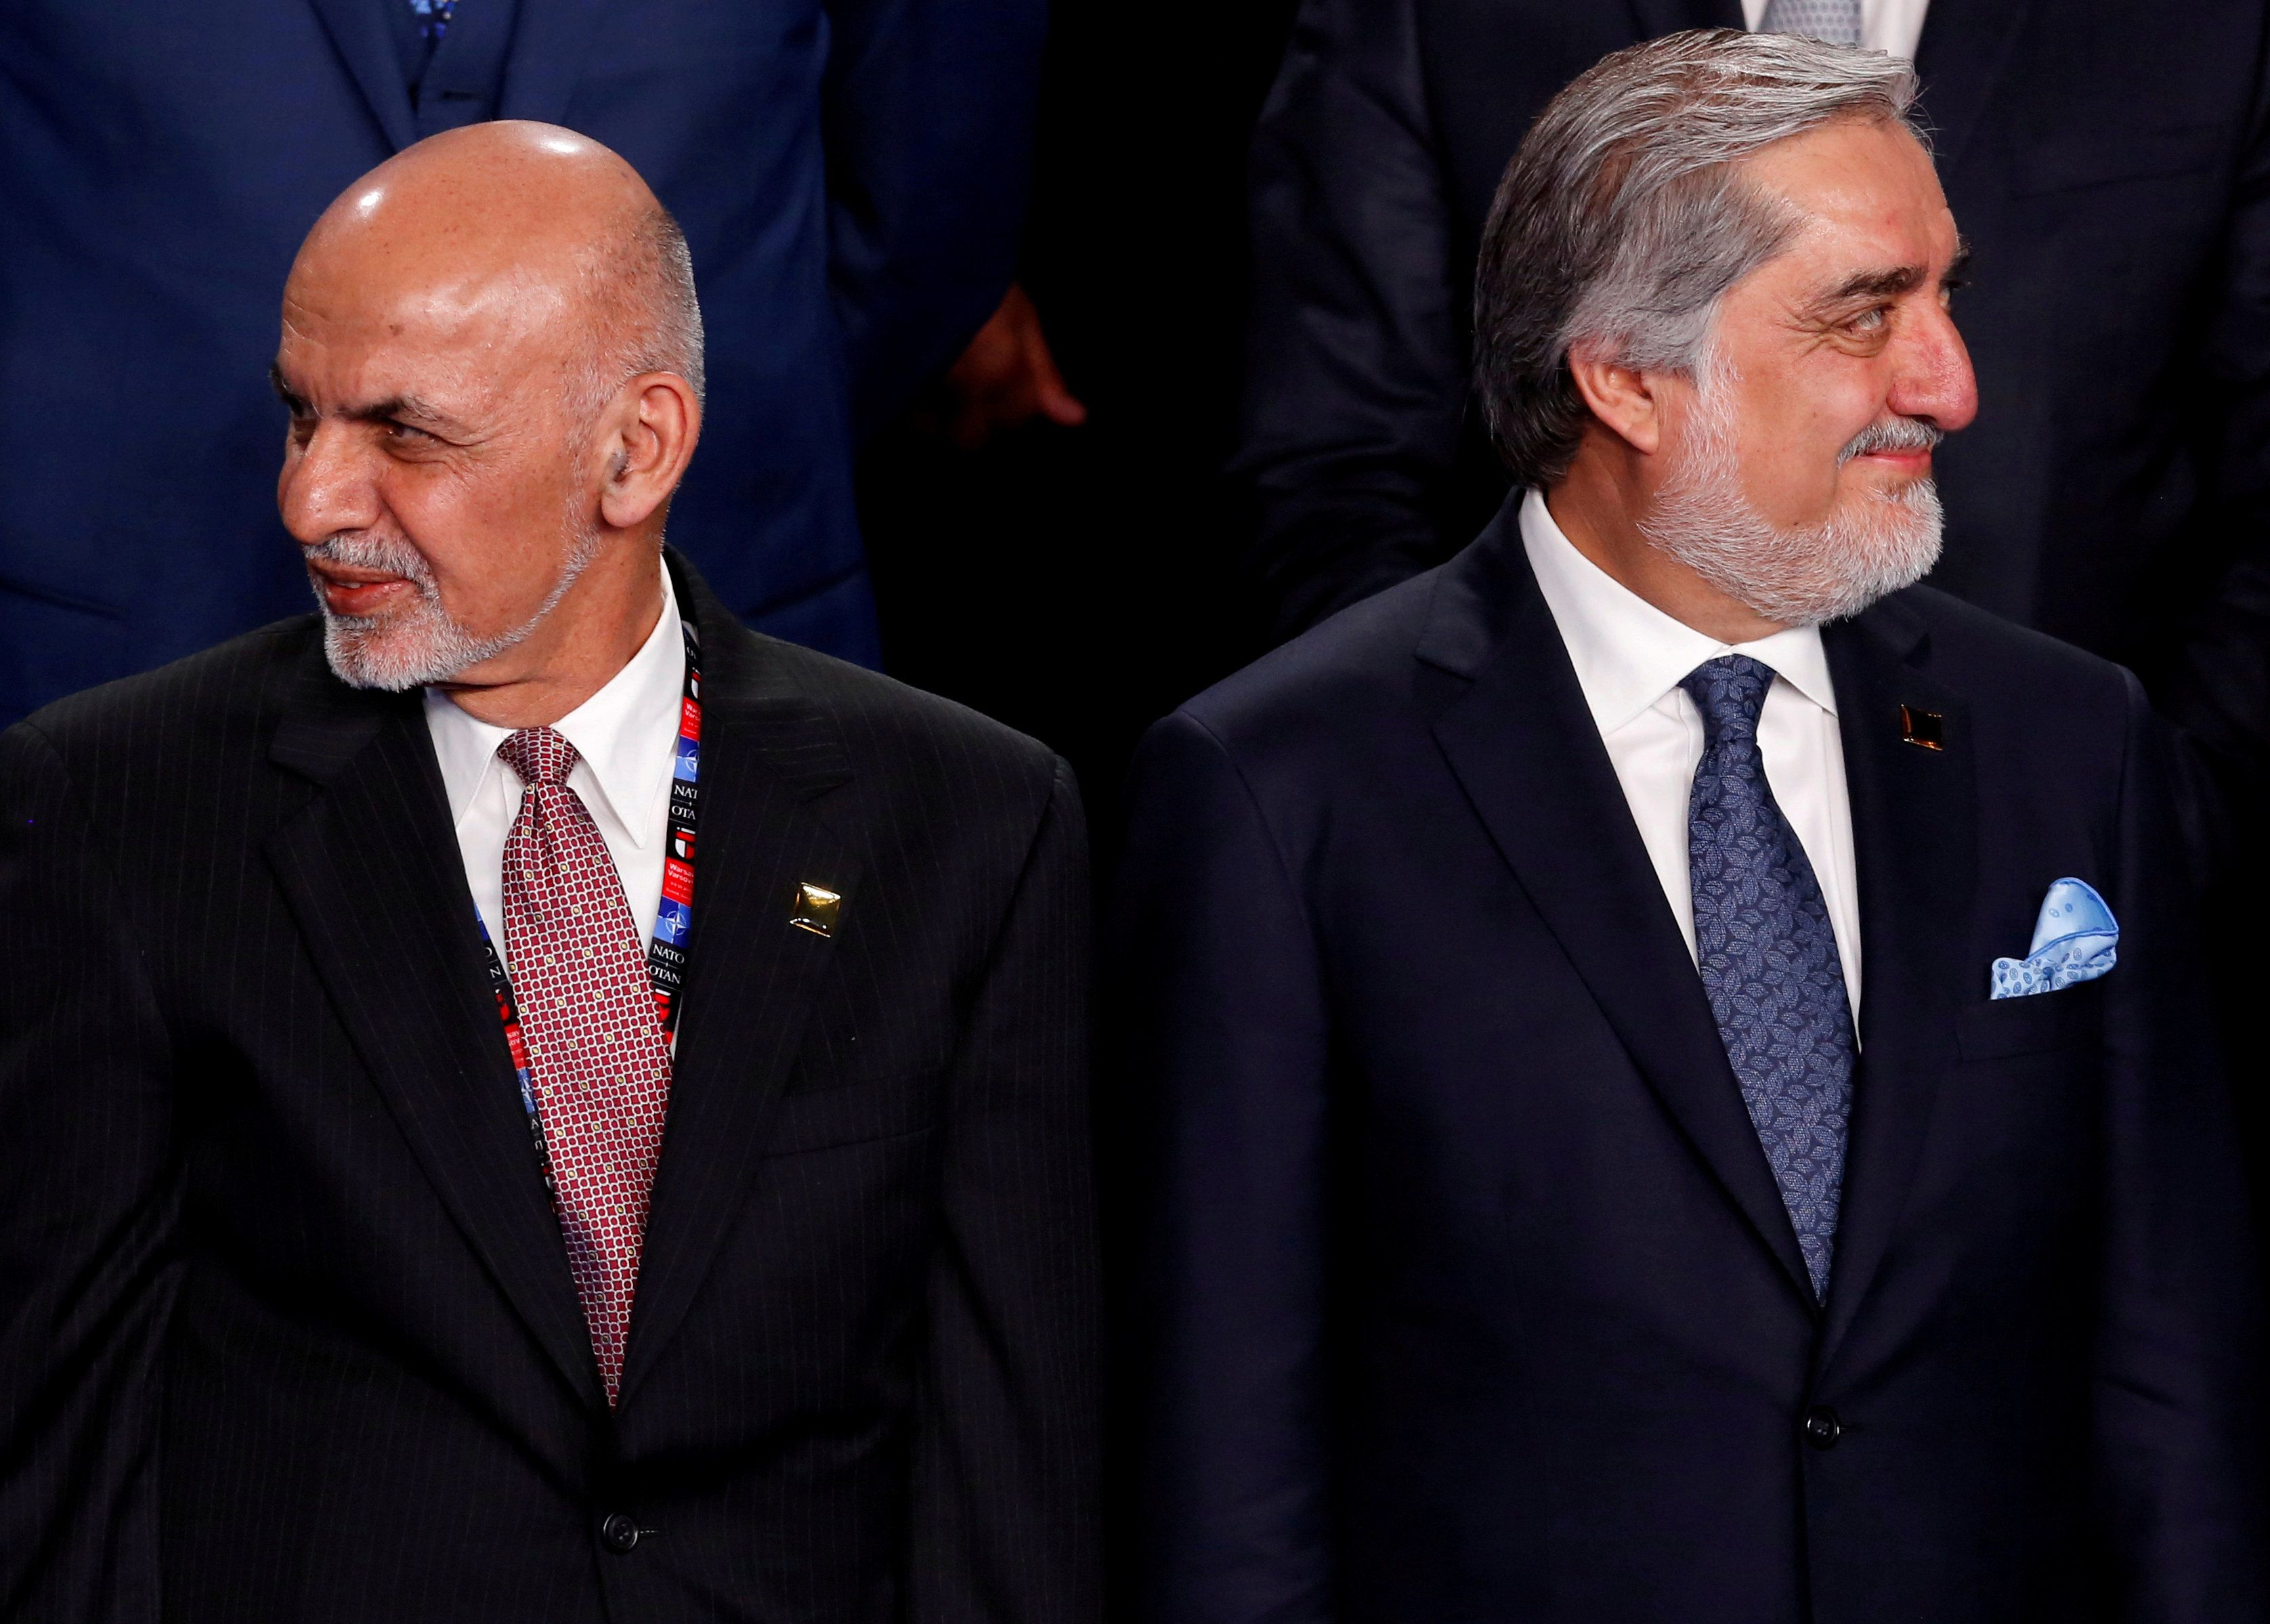 What We're Watching: Afghanistan's inaugurations,Taiwan vs China, Italy under quarantine